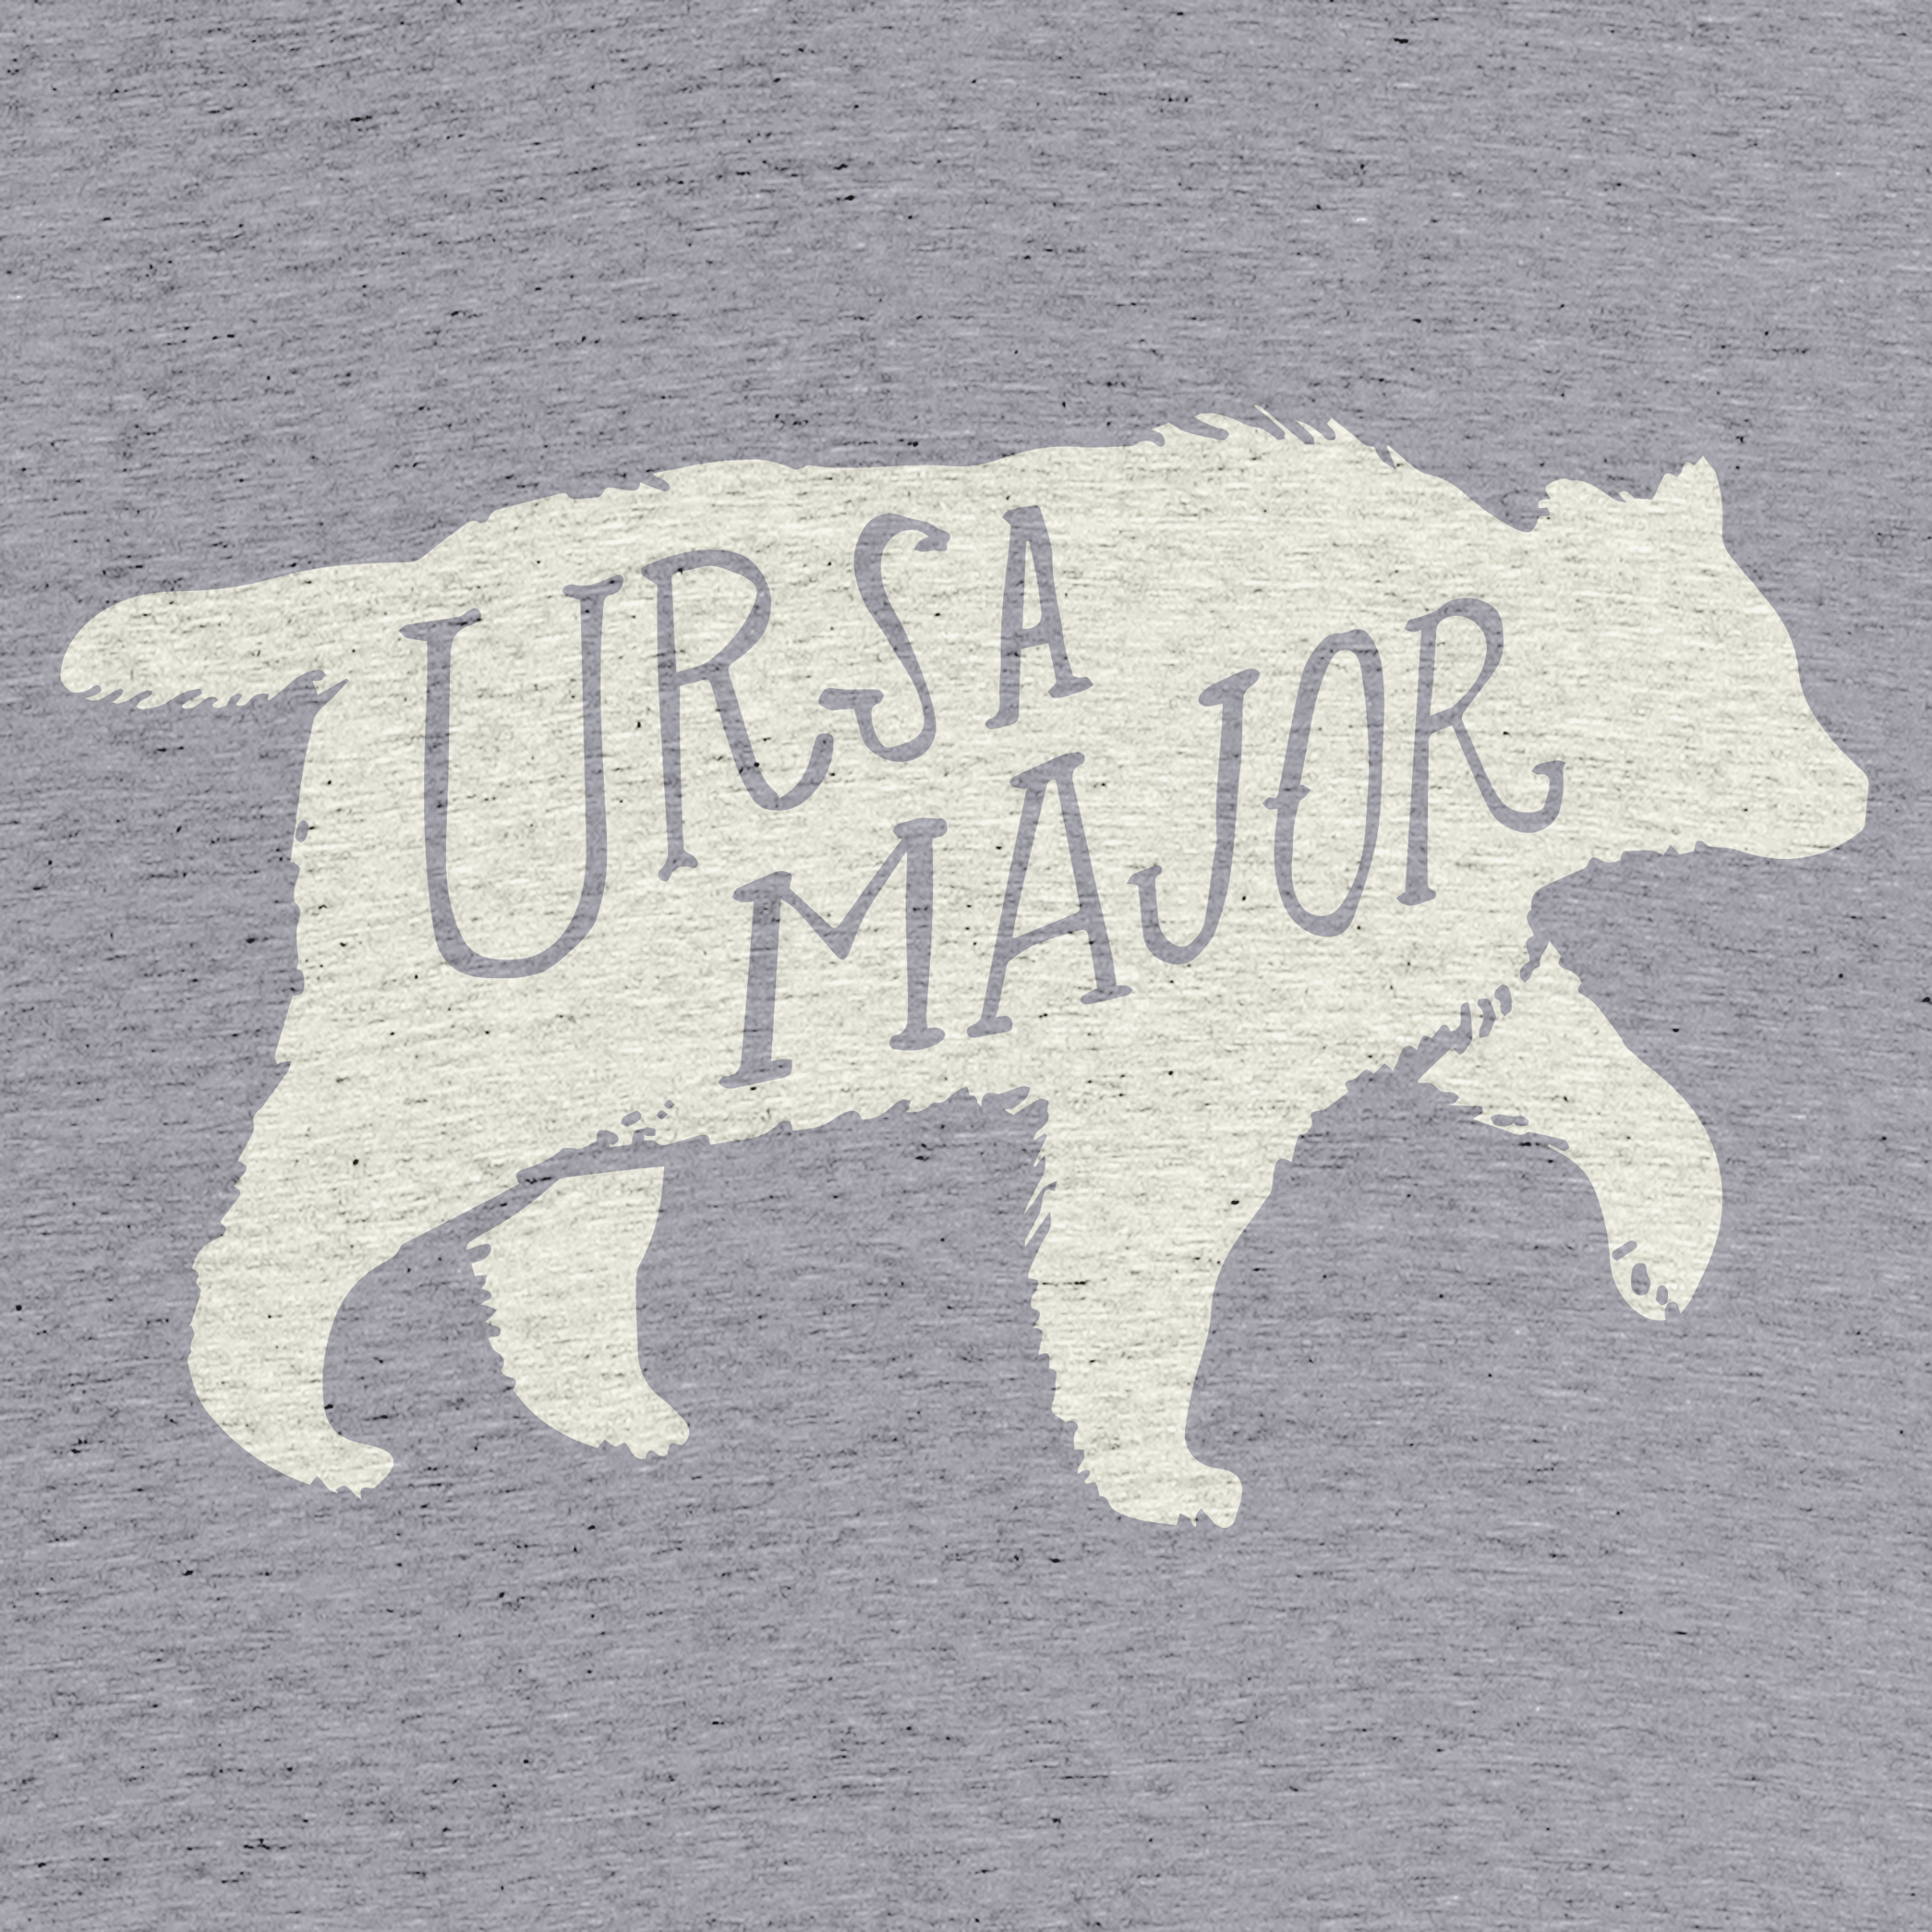 Ursa Major / Great Bear